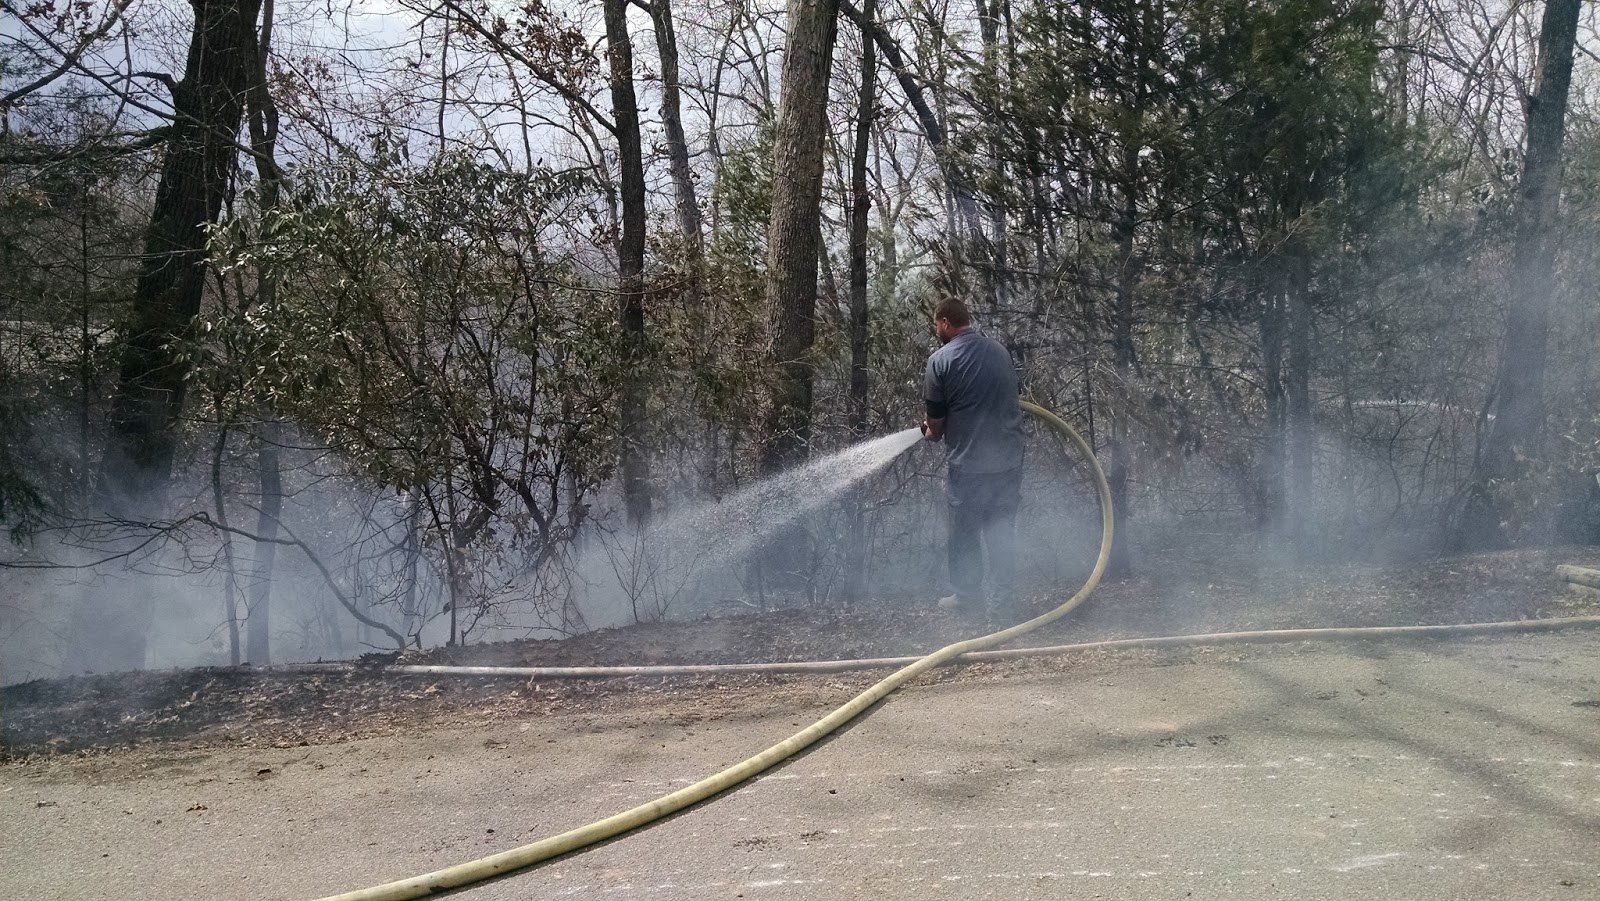 A firefighter applying water to put out hotspots